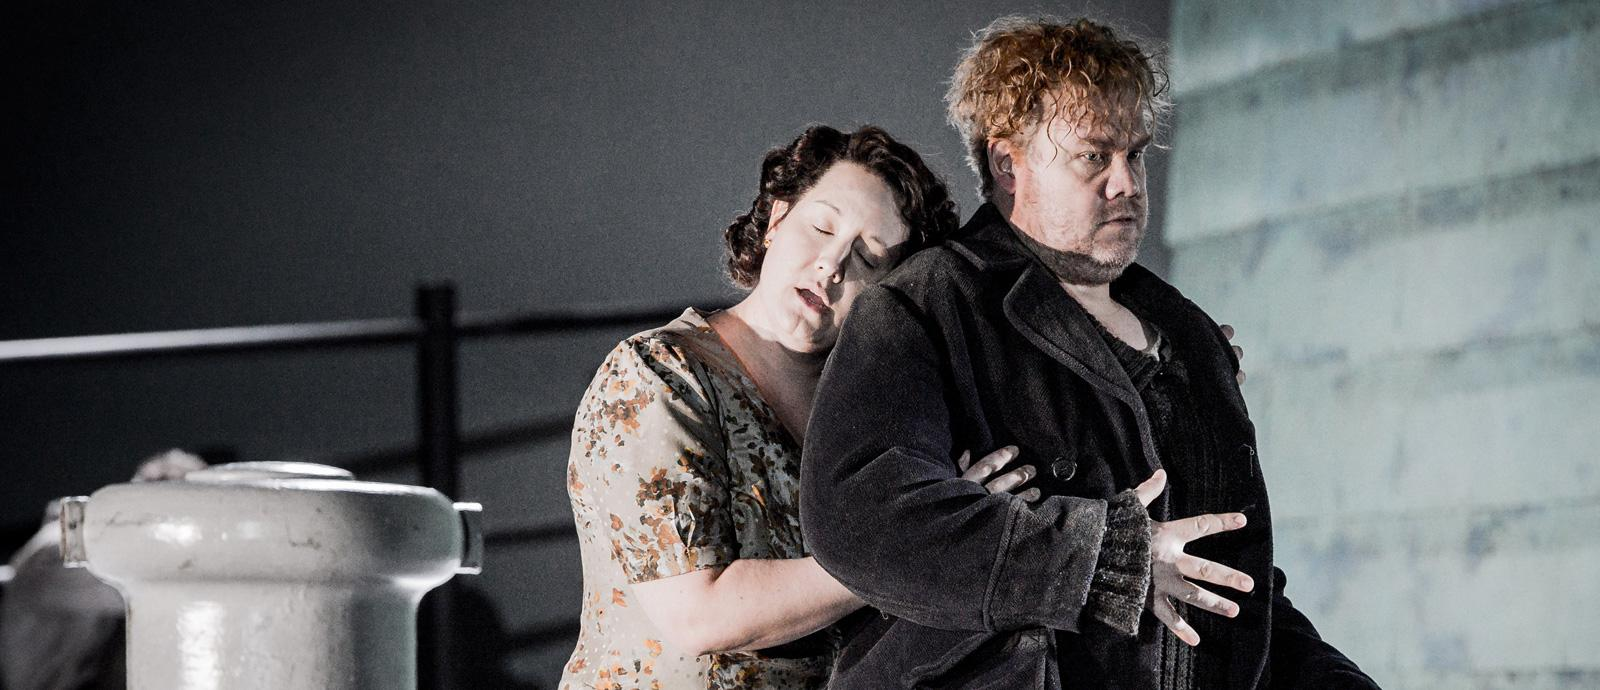 ENO's Peter Grimes - Elza Van Den Heever as Ellen Orford and Stuart Skelton as Peter Grimes. Photo by Robert Workman